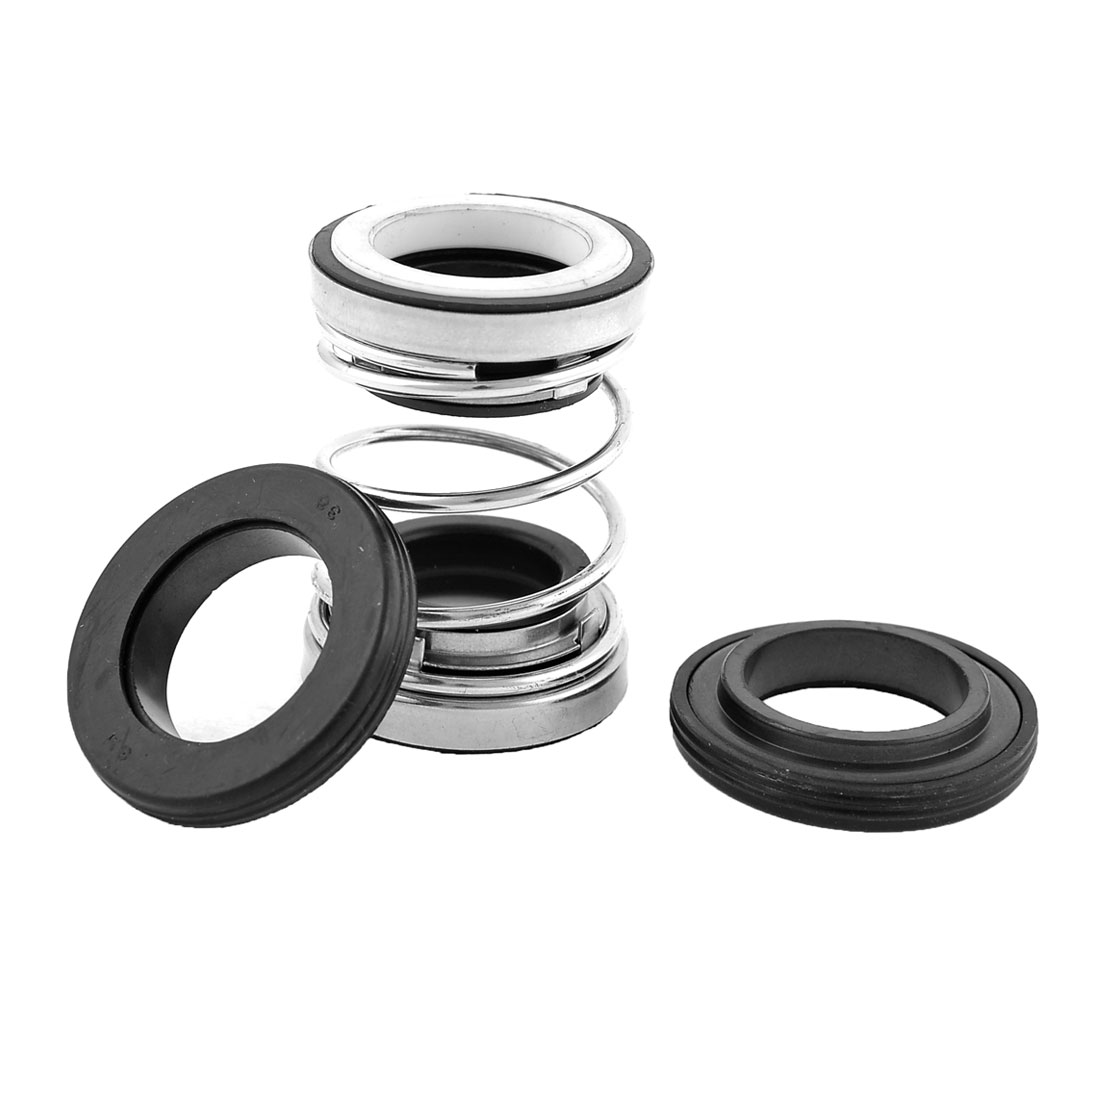 Rubber Bellows Ceramic Rotary Ring Mechanical Shaft Seal 19mm Dia for Pumps